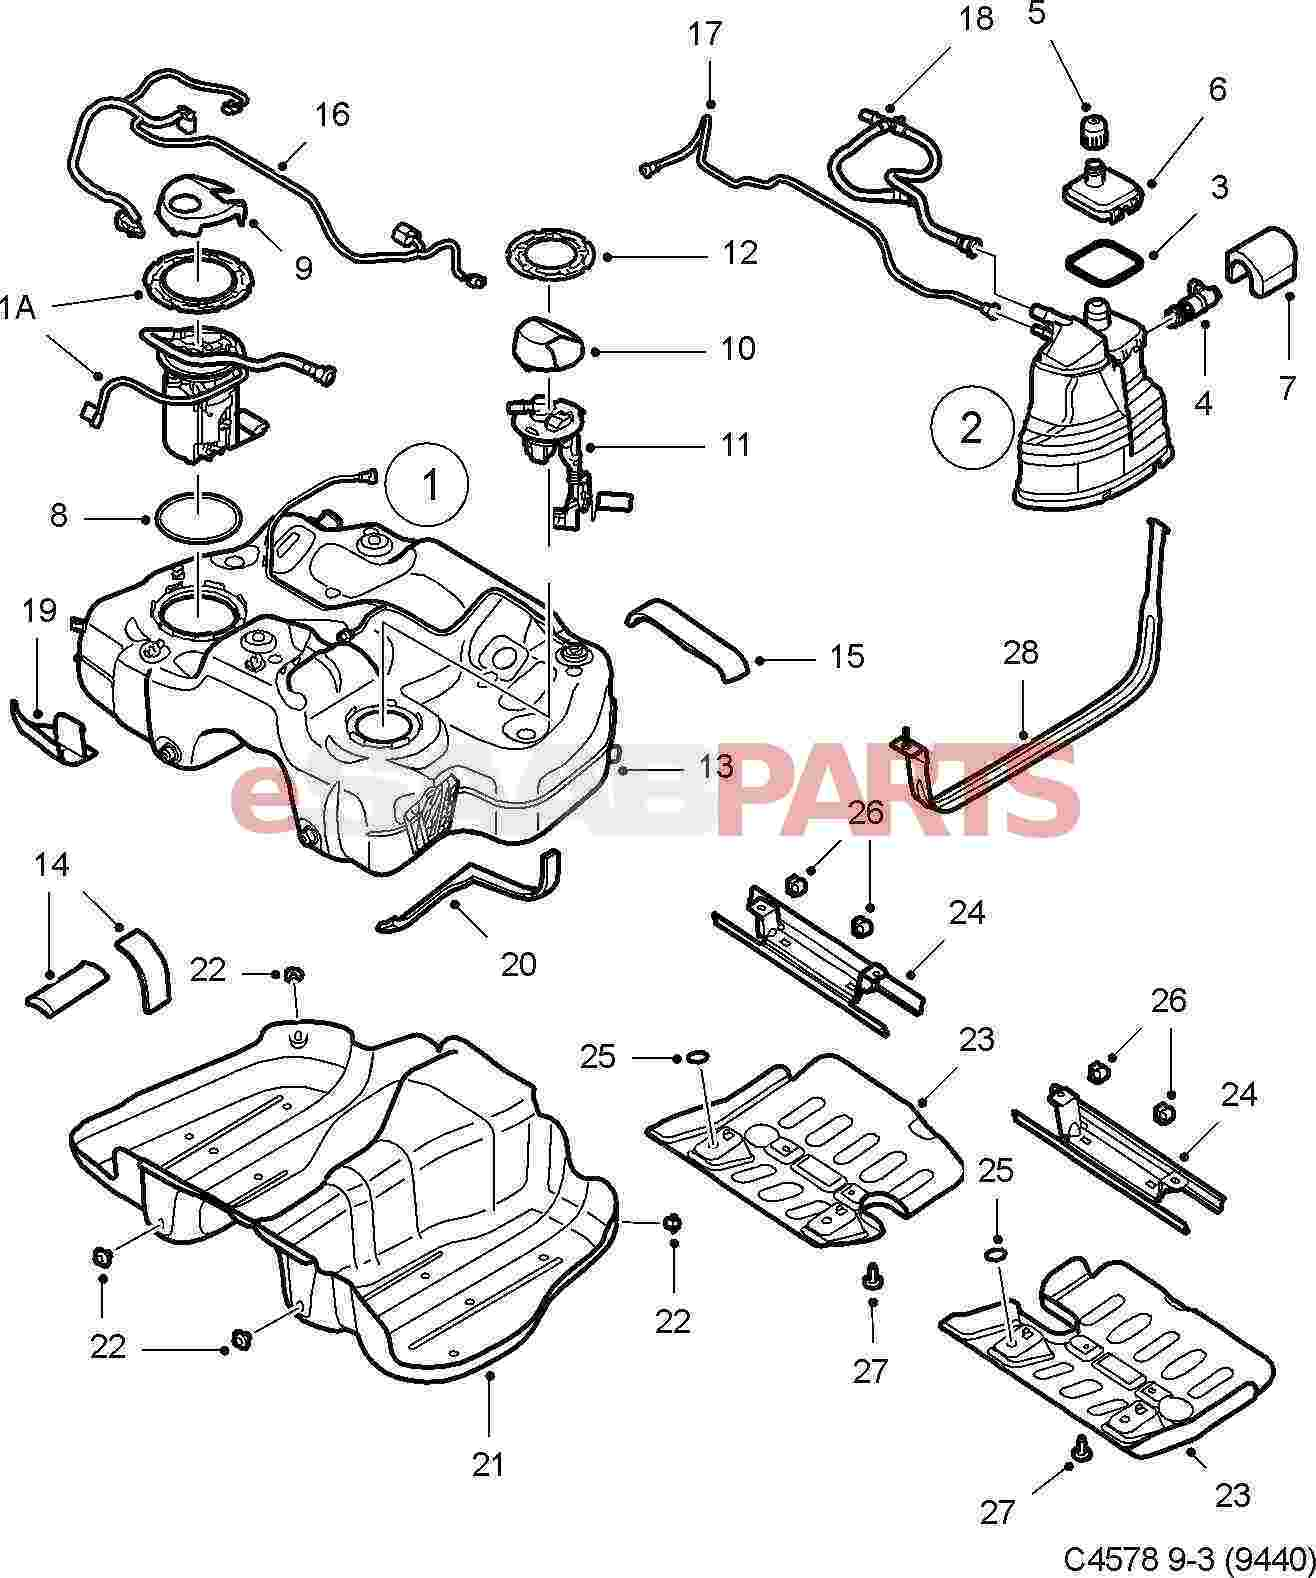 Linear Saab 2 3 Engine Diagram Smart Wiring Diagrams 0 Turbo 2003 9 Specs 20